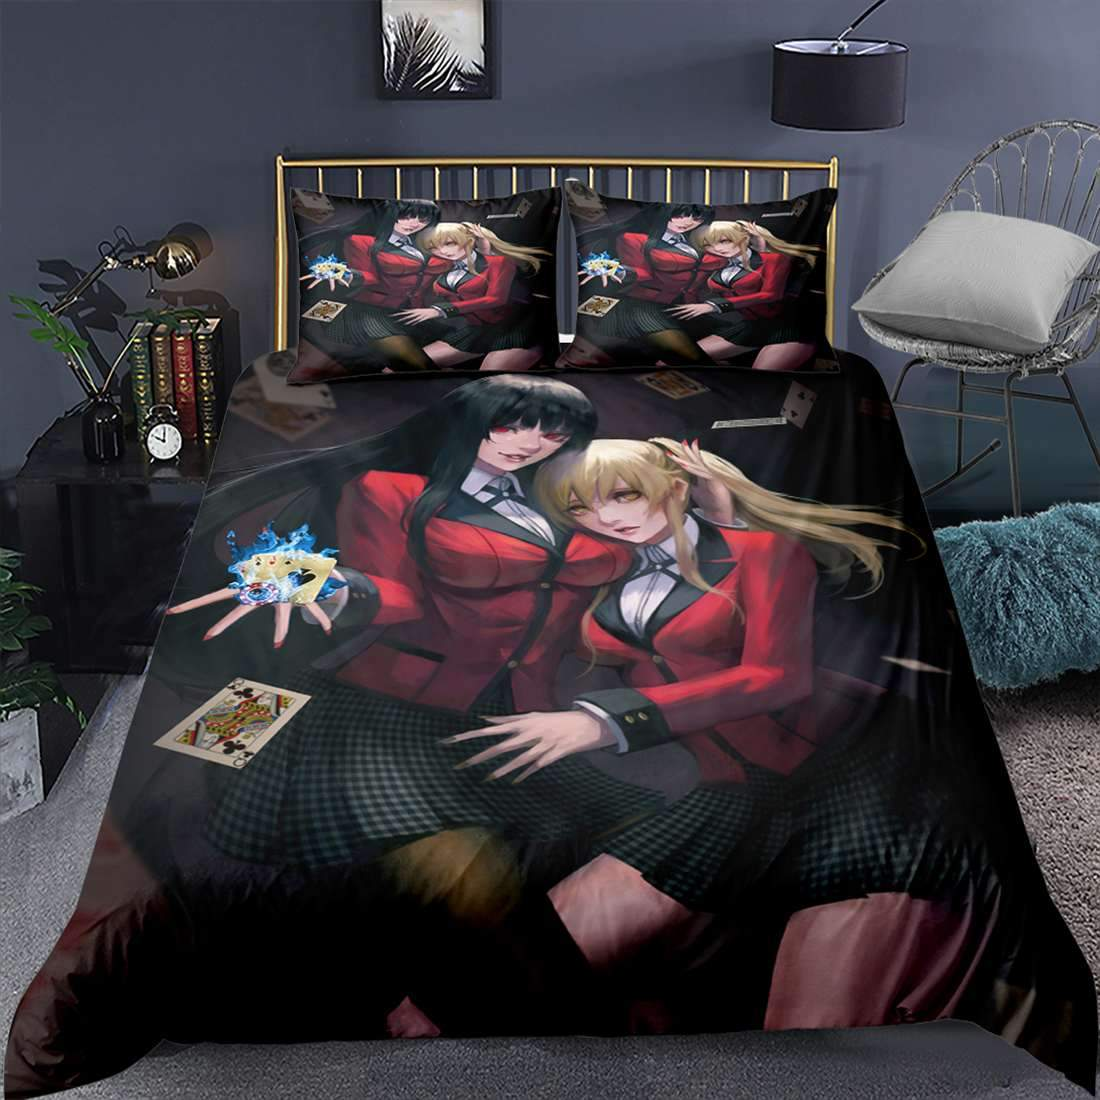 Bedding Sets Kakegurui Sale